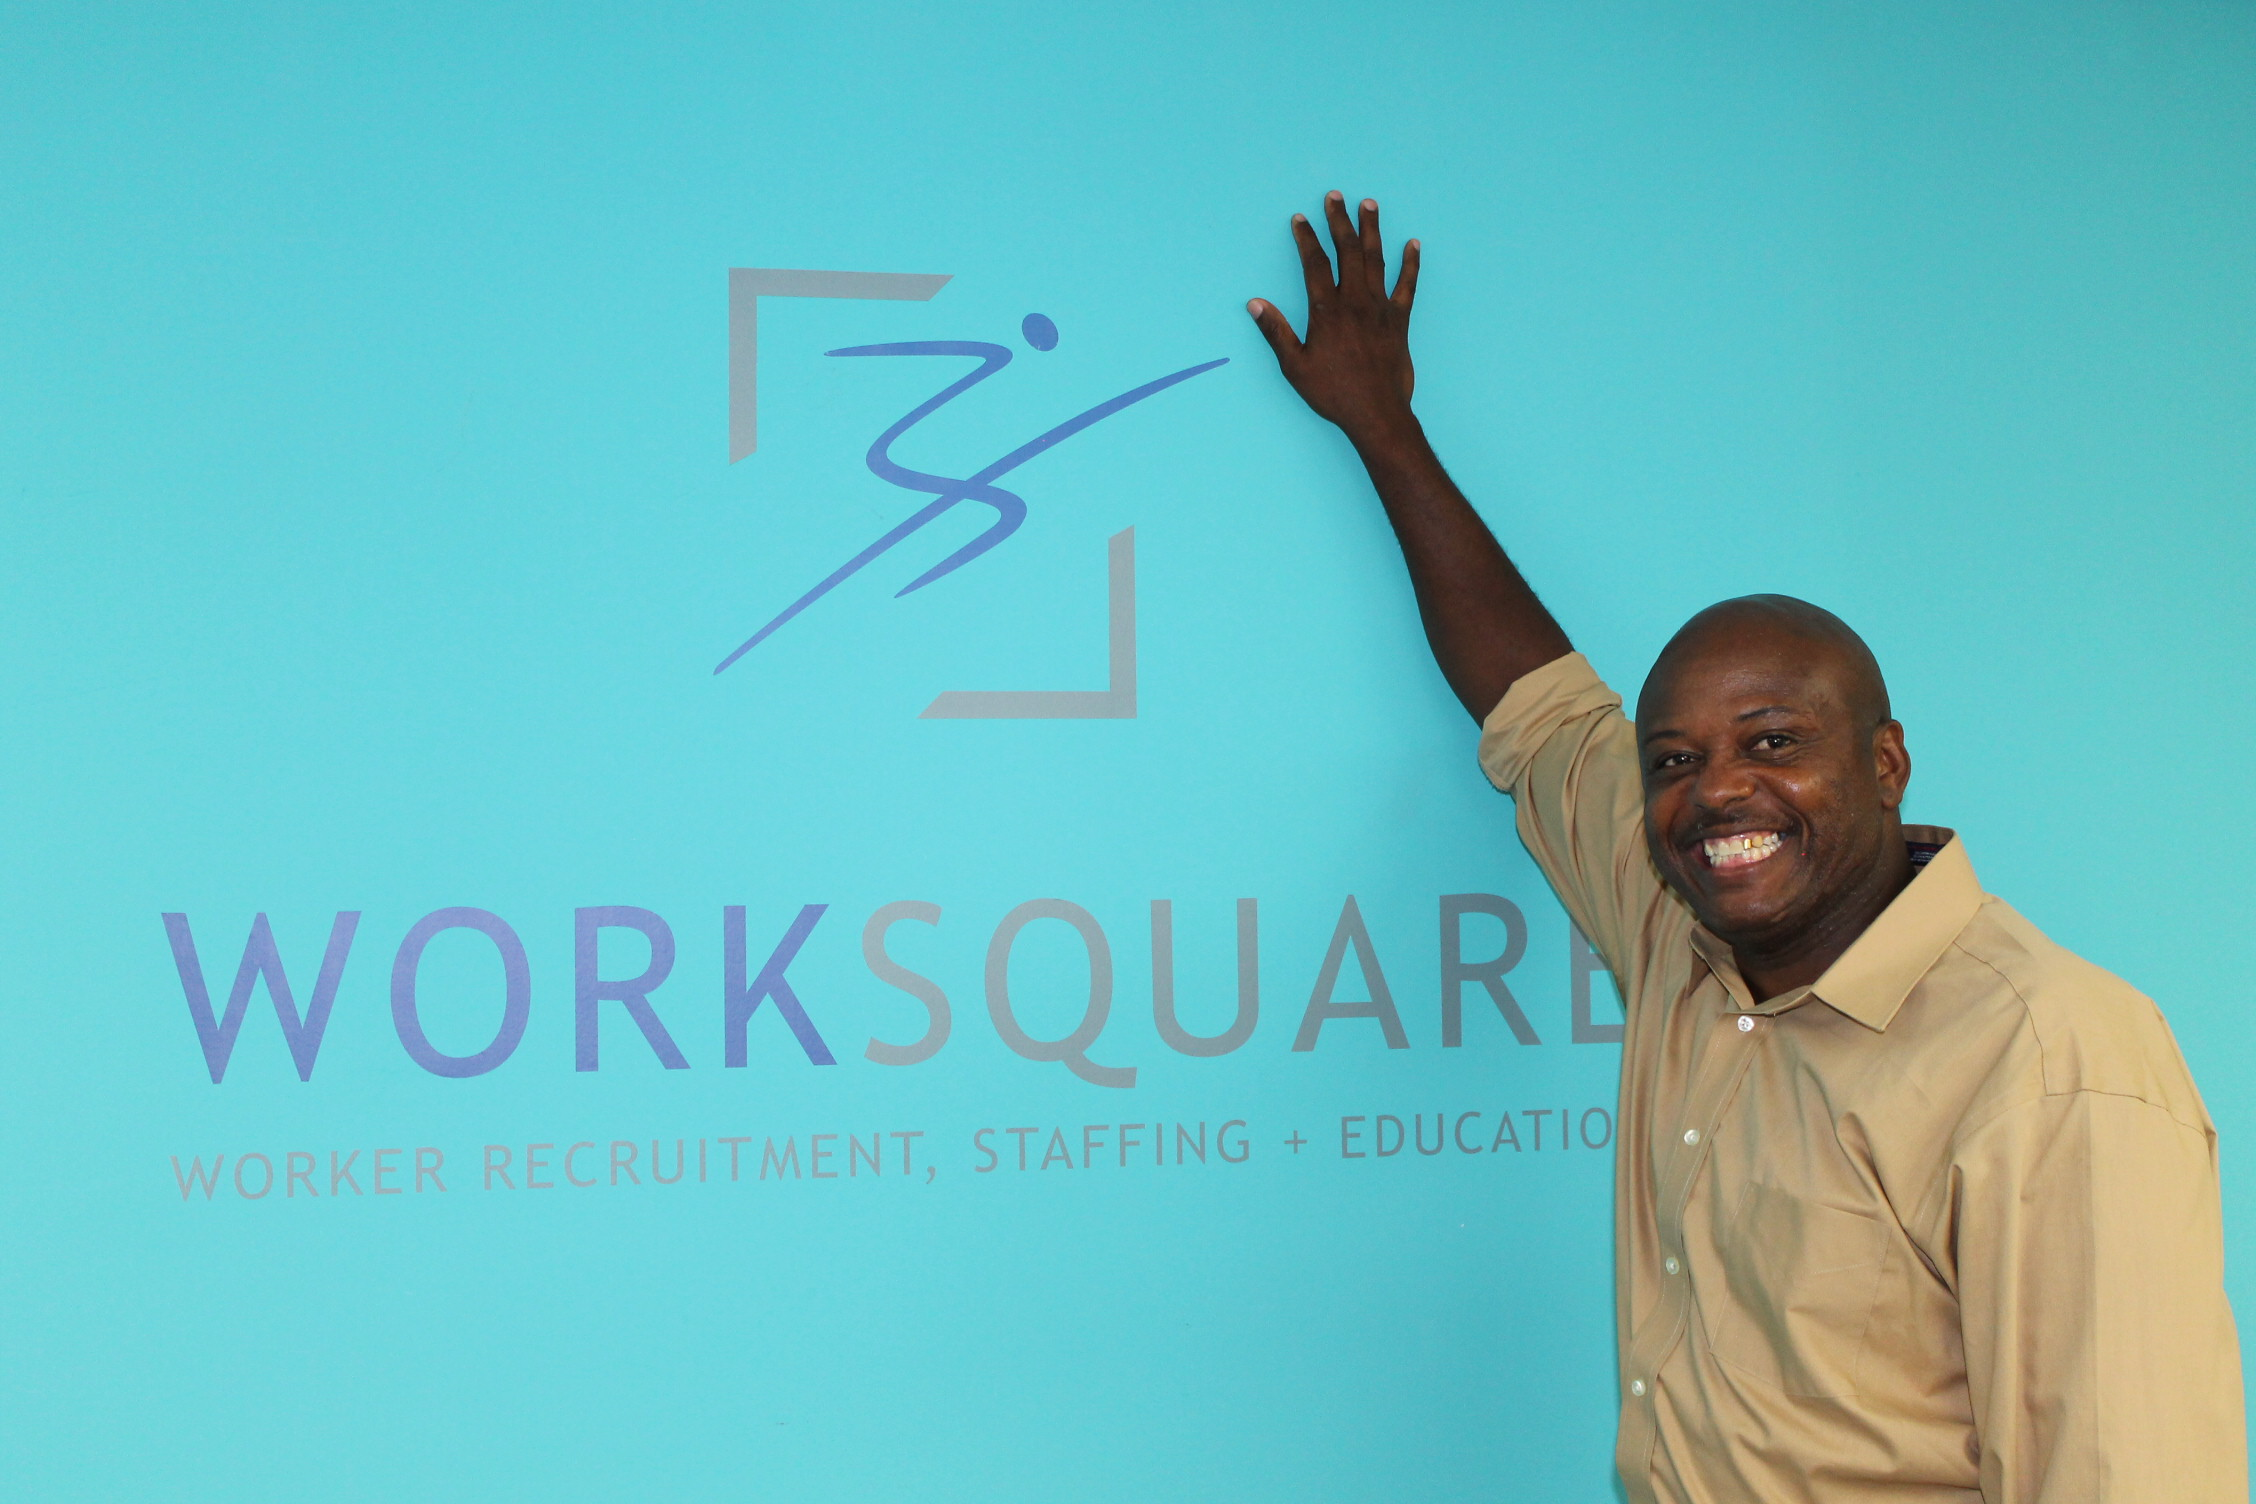 Worksquare  is  Worker Recruitment, Staffing + Education